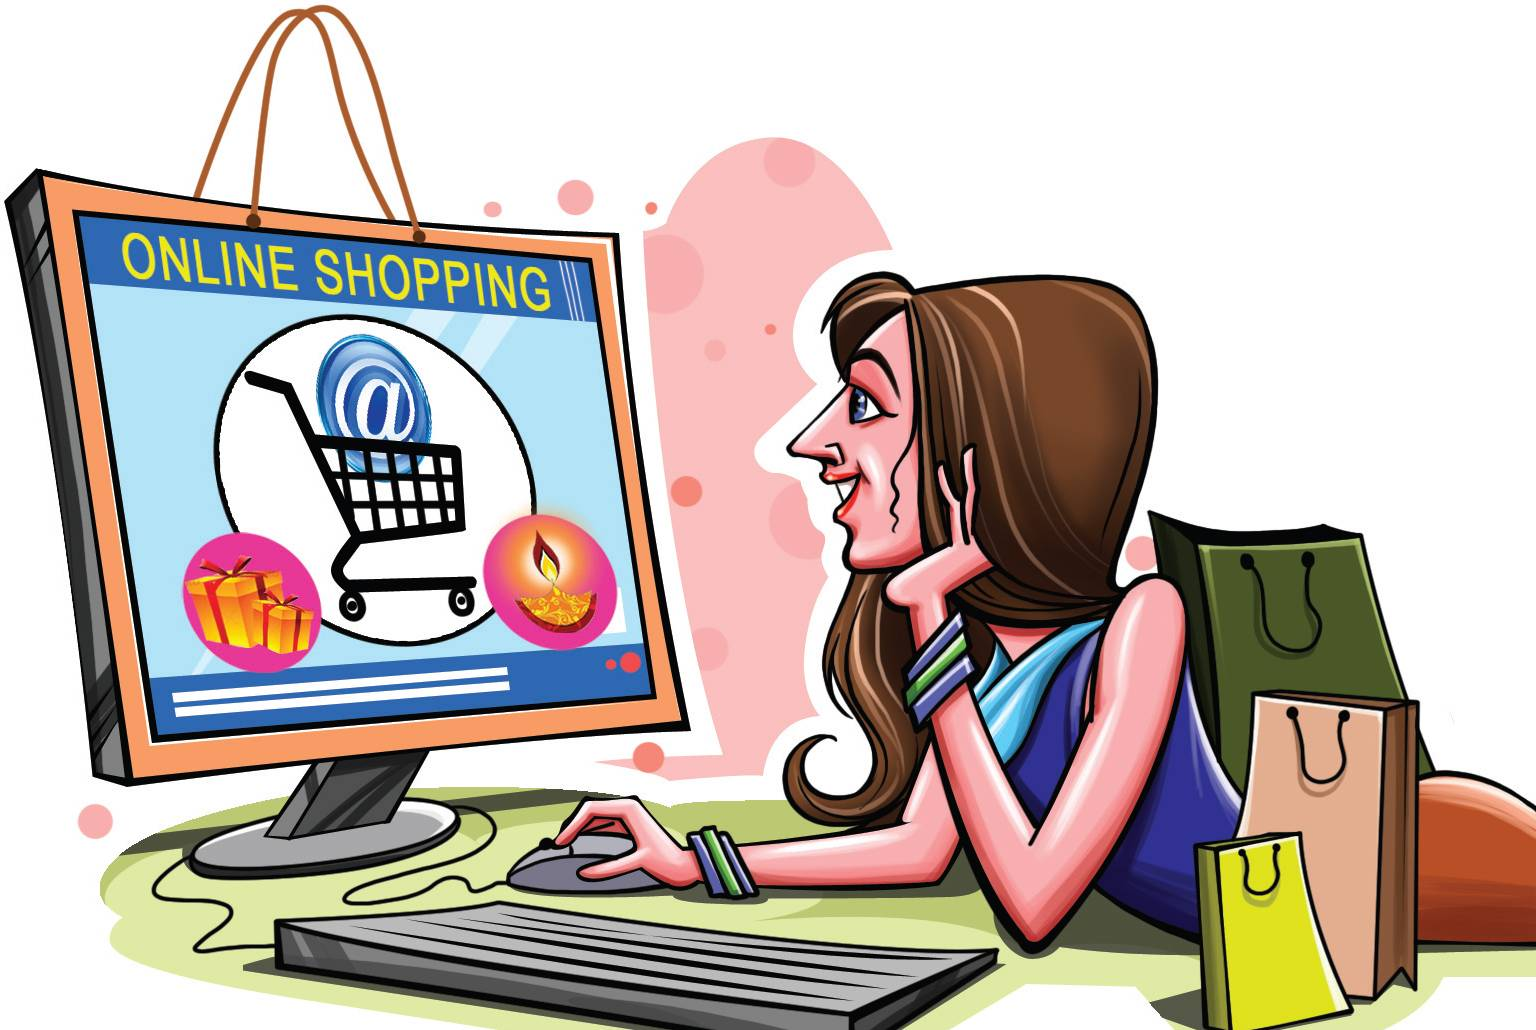 هو الحل tajmarka.com‎ Online-shopping-future-india